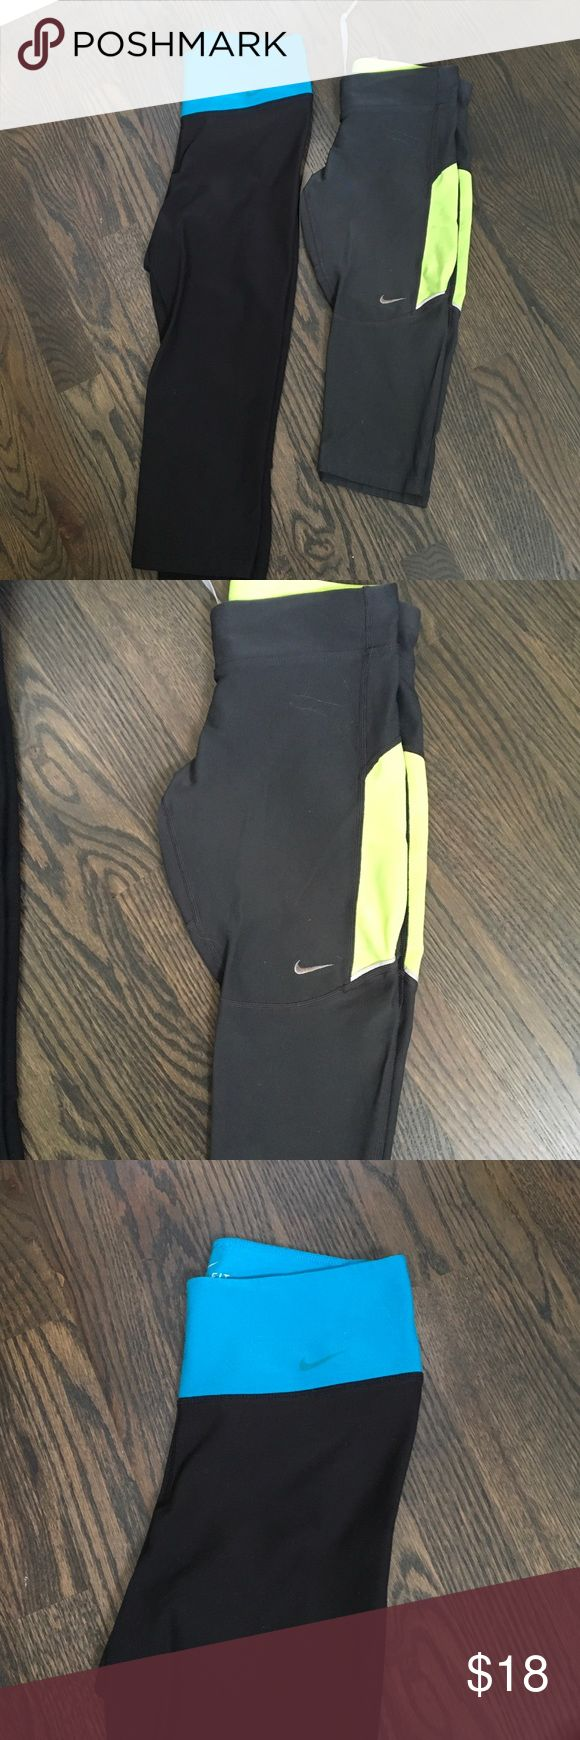 Pair of Nike capris Get these two great pairs of Nike capris in size extra small! Nike Pants Capris